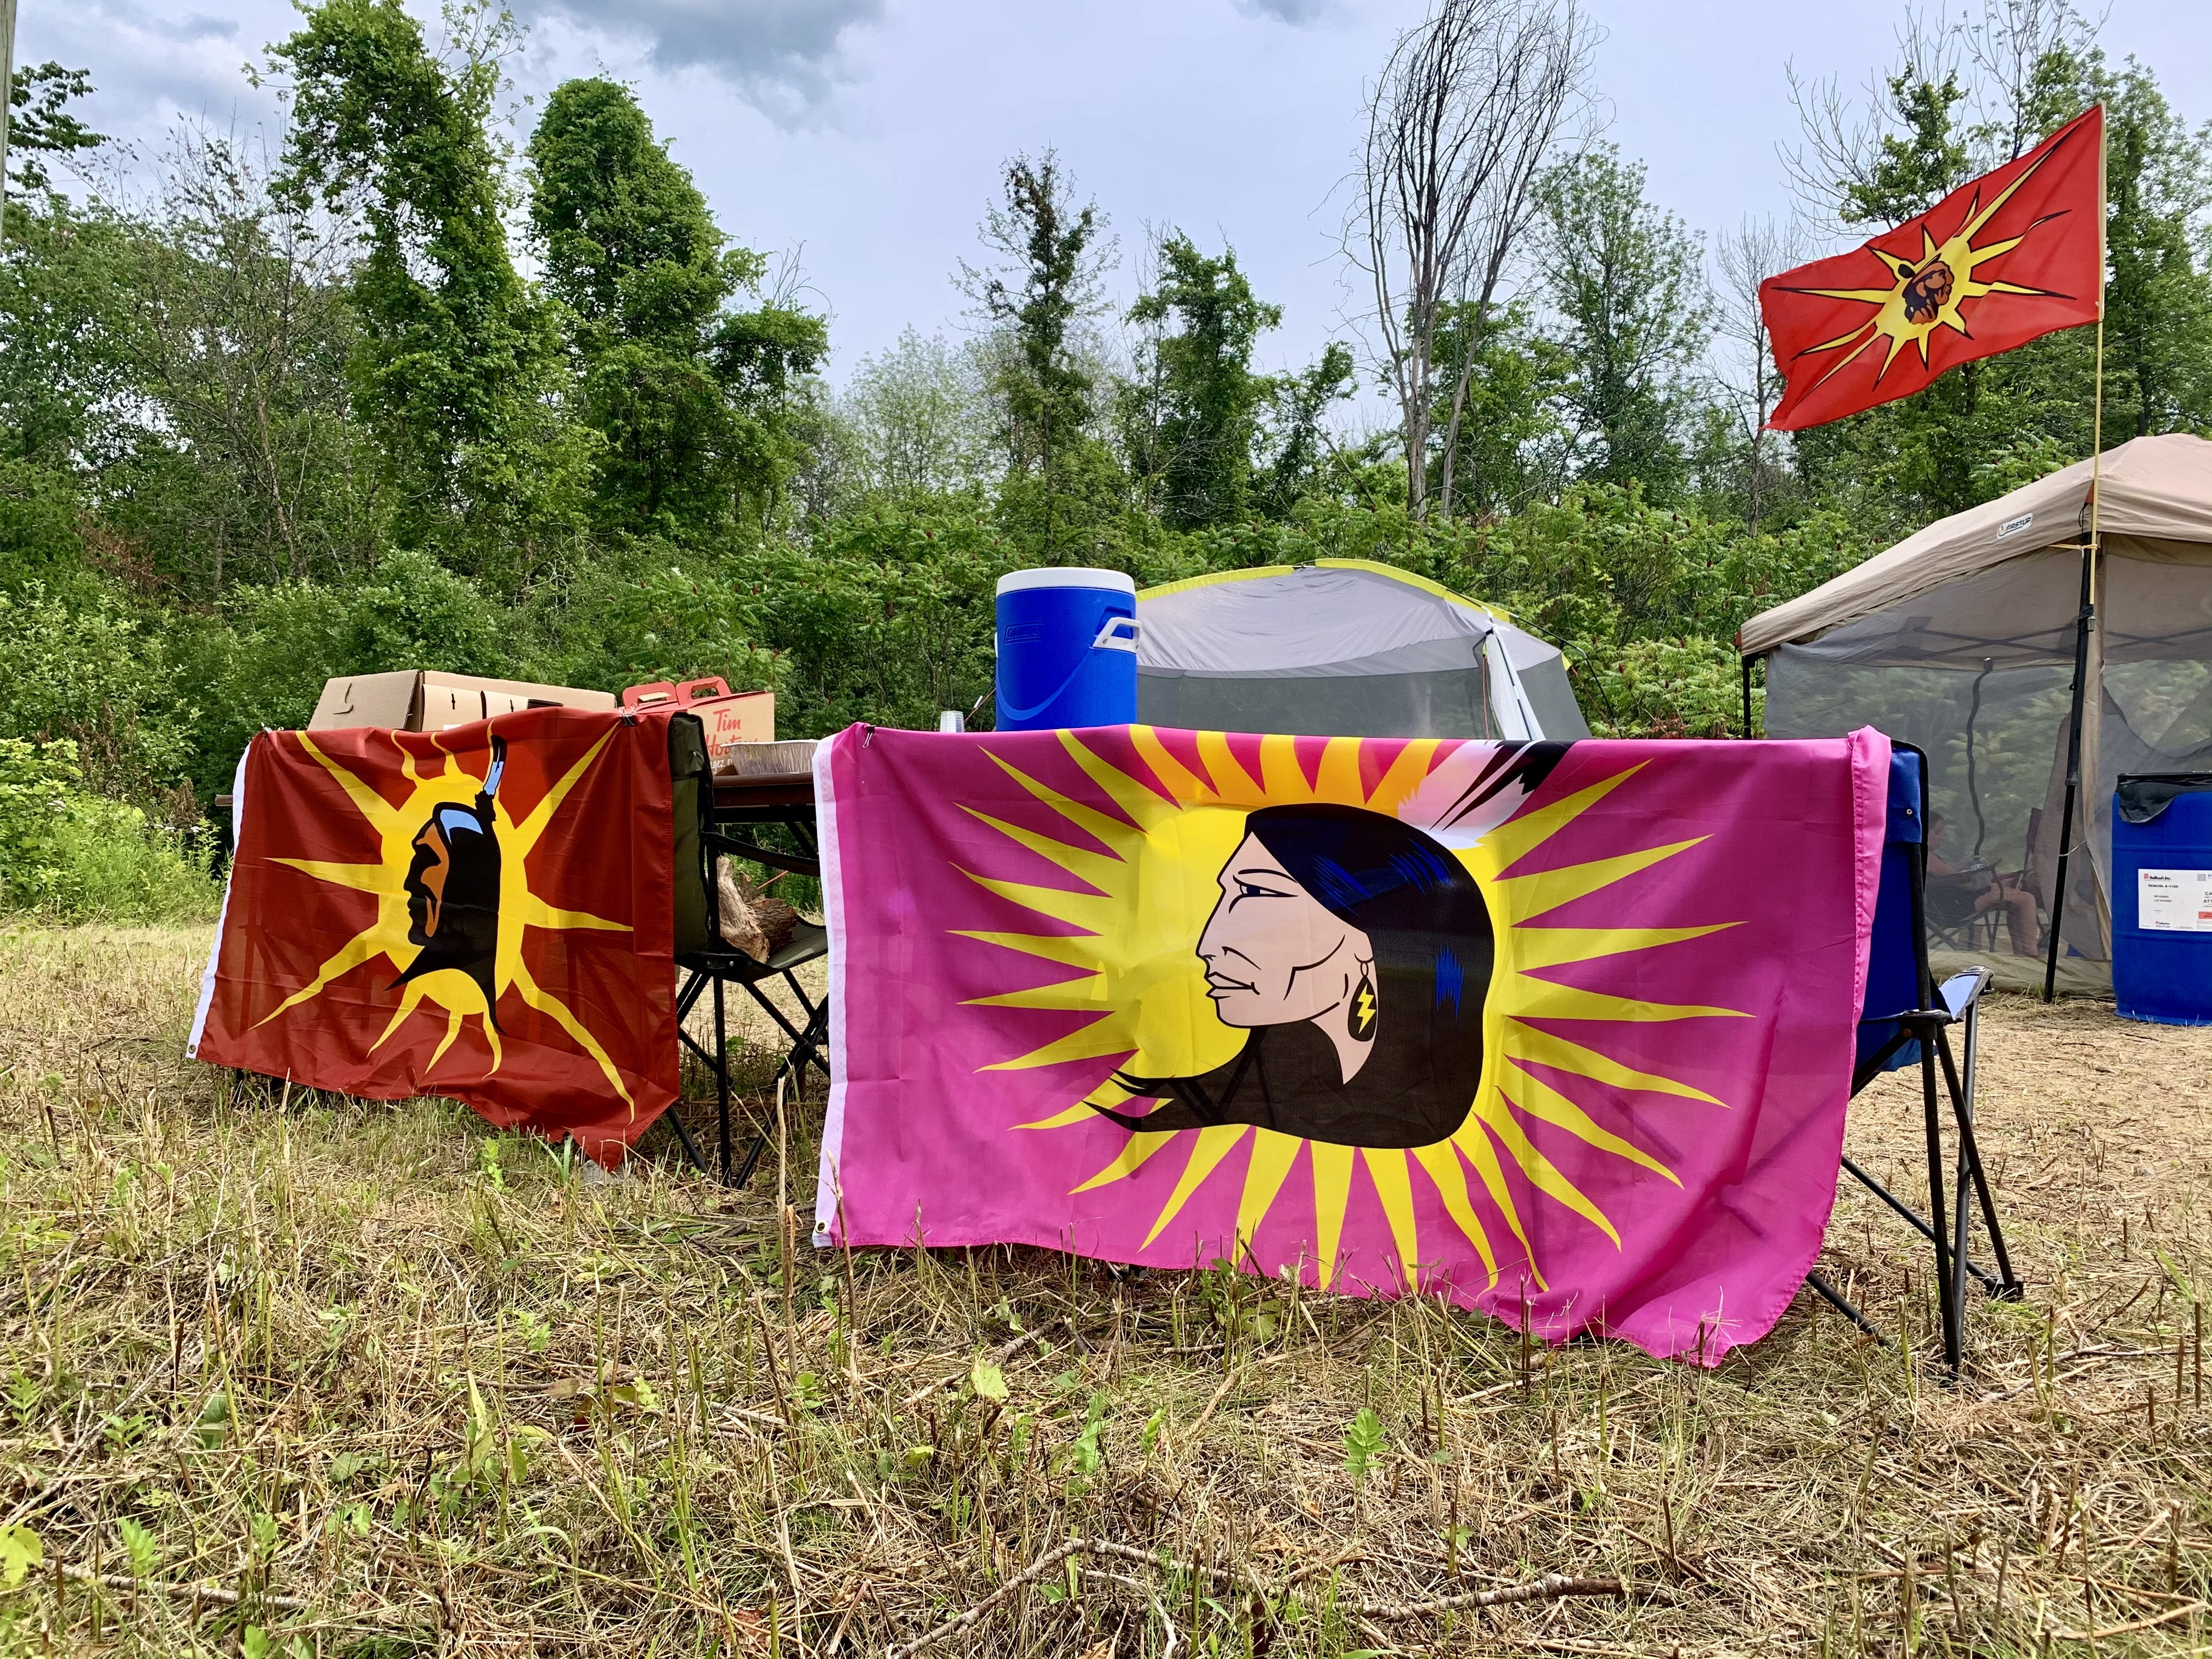 The main camp is located on Parcel E, an area of land that was returned to Kahnawake in 2018, while smaller camps are scattered across the adjacent property that is being reclaimed to prevent a housing development project. (Ka'nhehsí:io Deer/CBC)